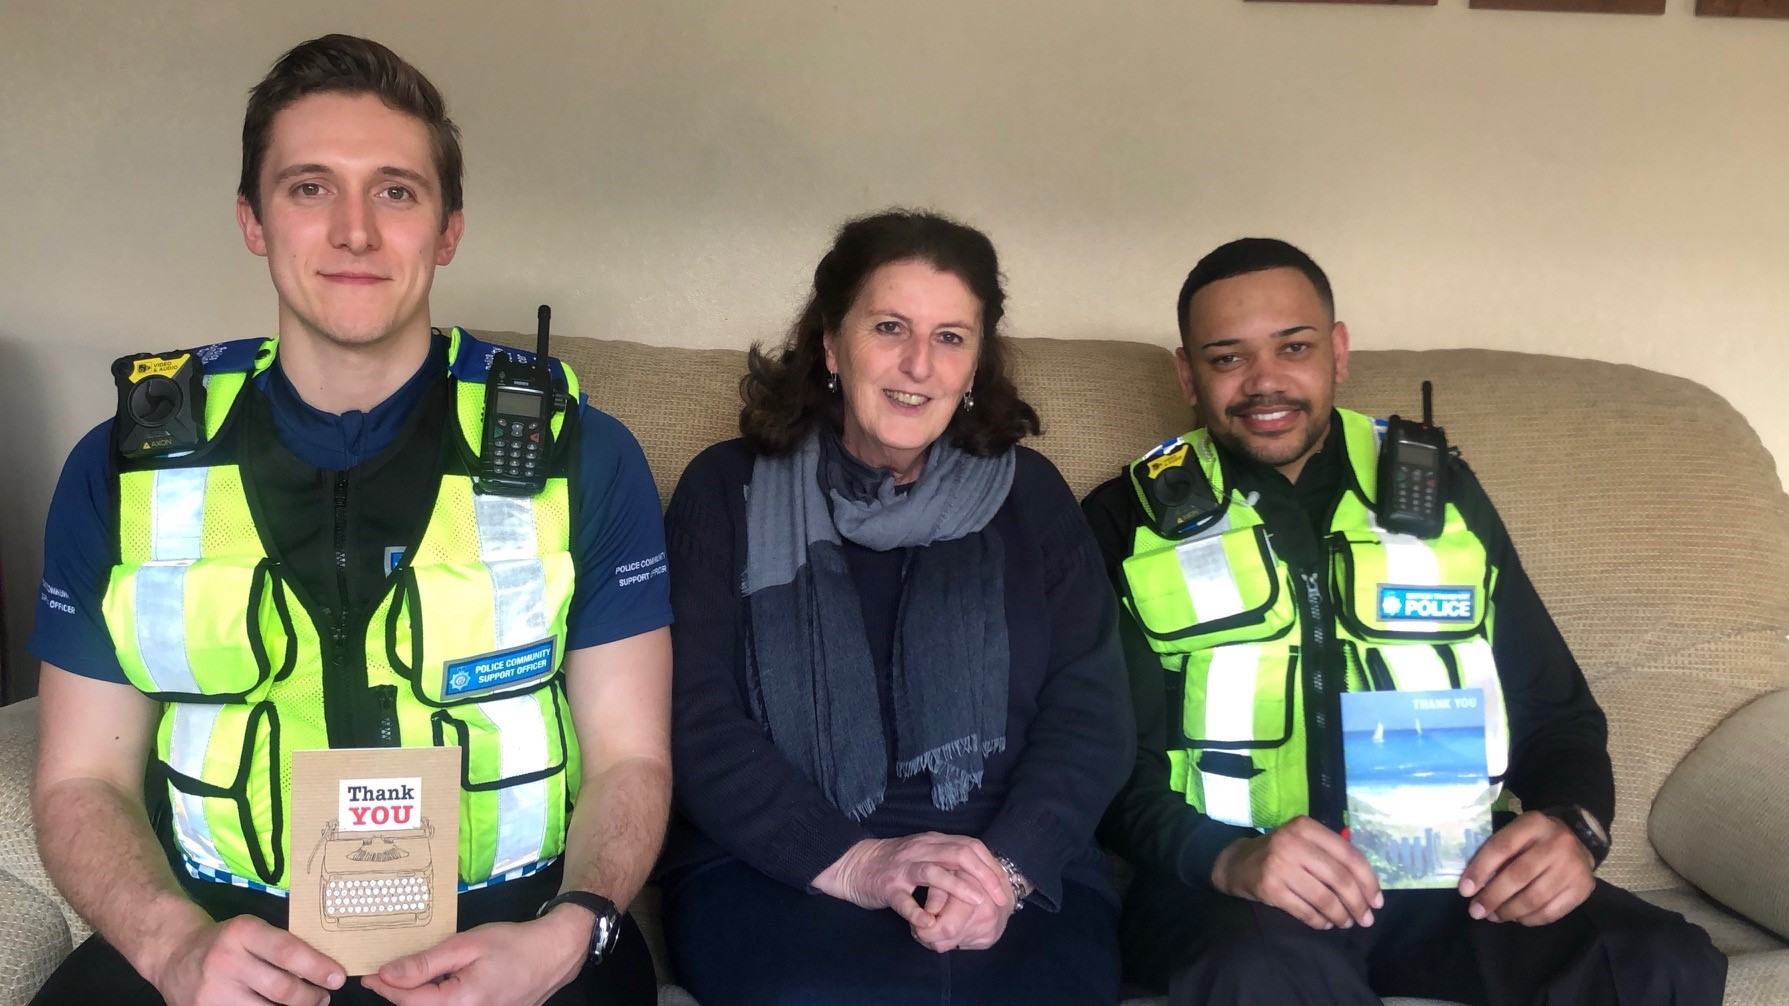 Wendy thanks Safer Travel PCSO Ollie Cornell and SPC Connor Harris